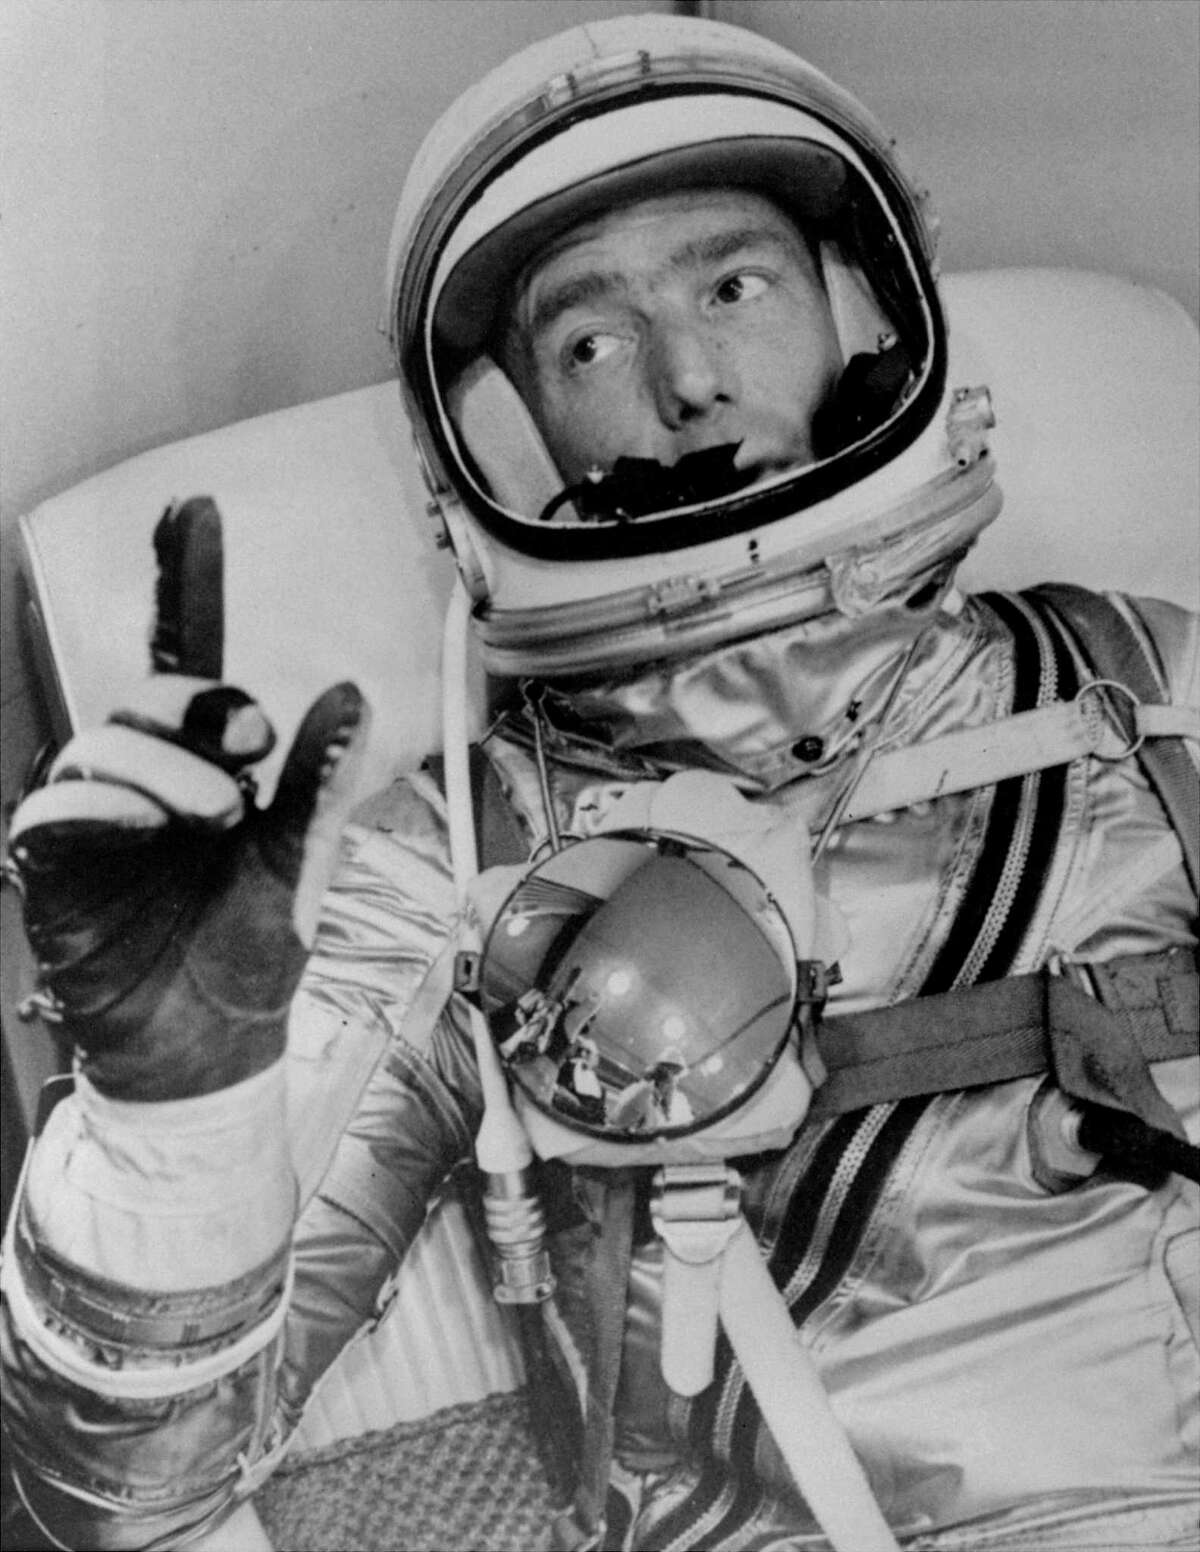 Astronaut Scott Carpenter on his way to being the second American in orbit at Cape Canaveral, Fla., May 24, 1962. He was a pioneer of space and the oceans.